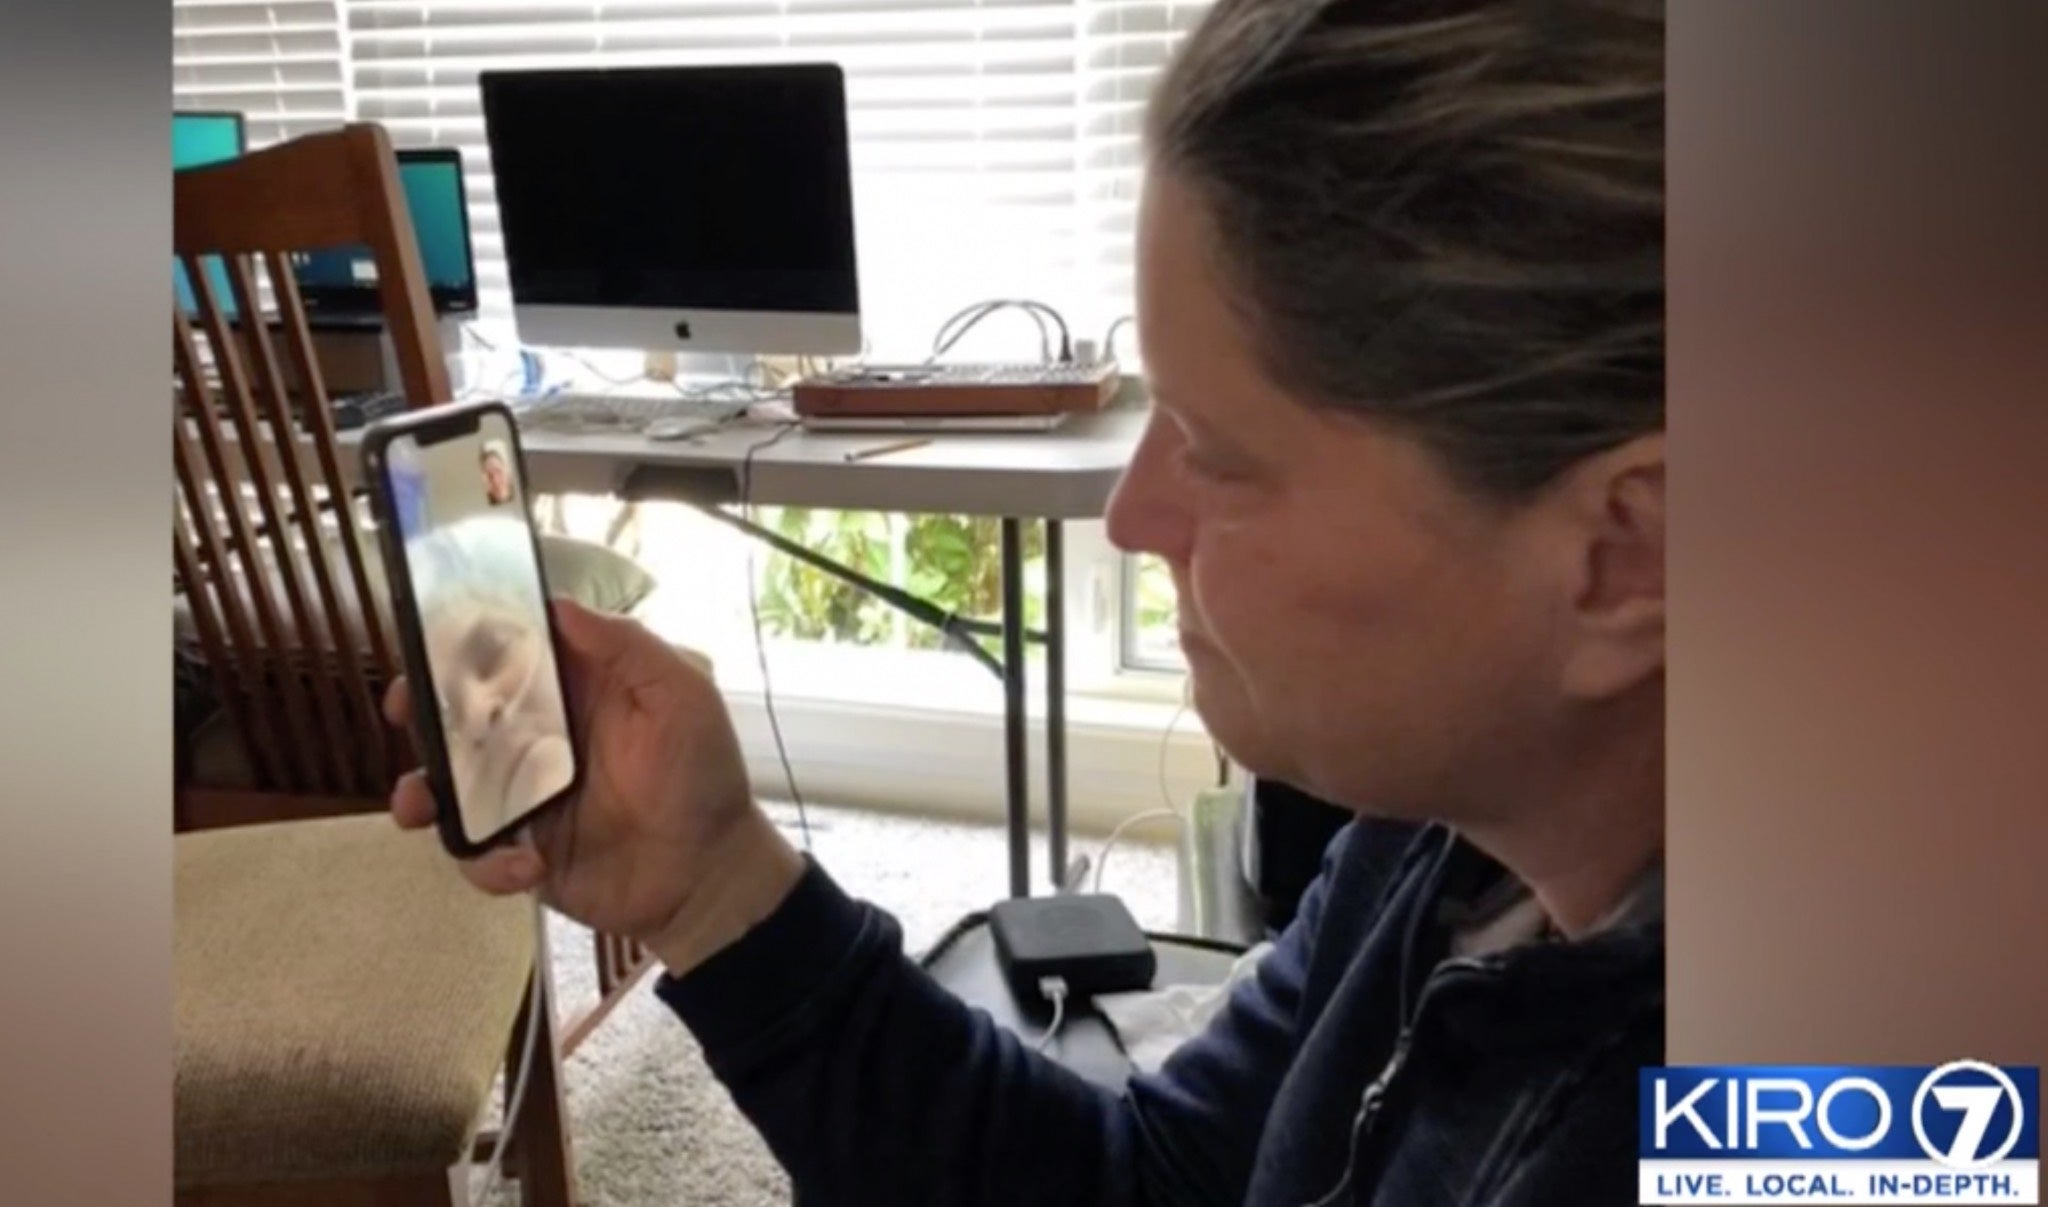 'She was not alone': Nurse uses video chat to let daughter say farewell to mother dying of coronavirus - independent